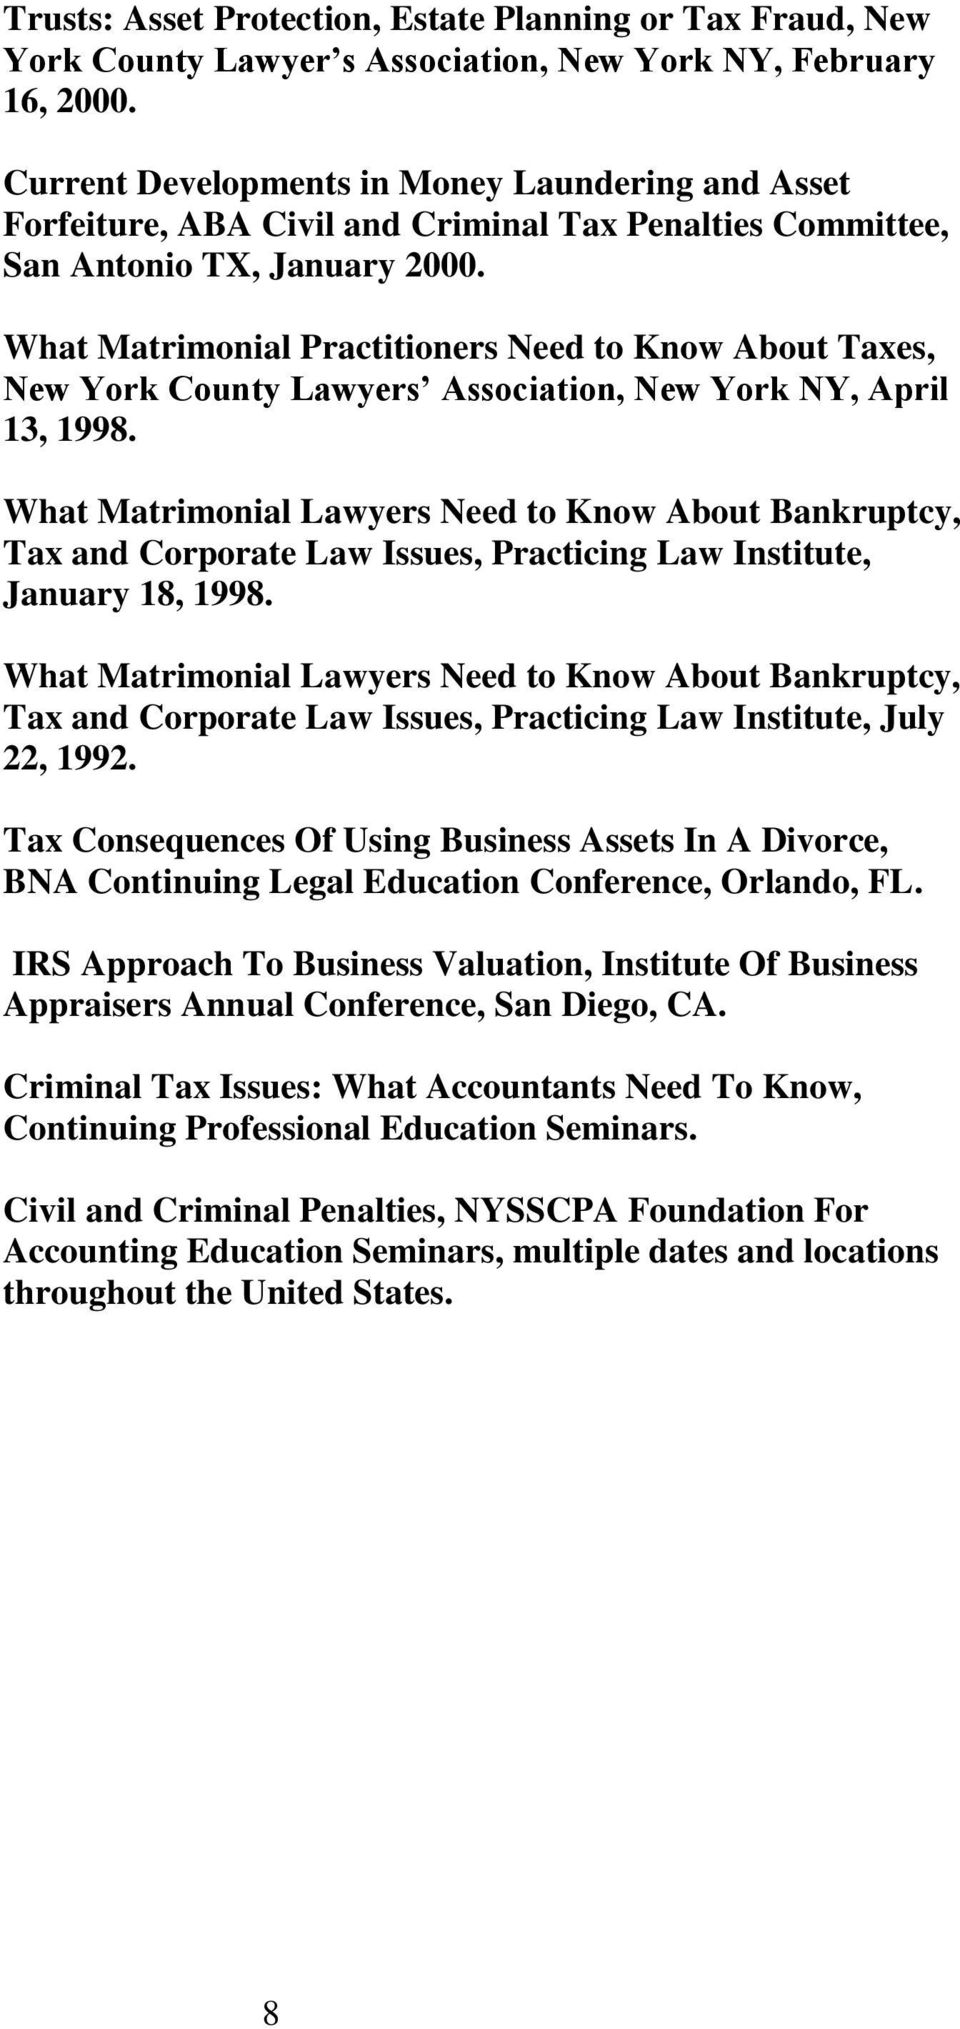 What Matrimonial Practitioners Need to Know About Taxes, New York County Lawyers Association, New York NY, April 13, 1998.